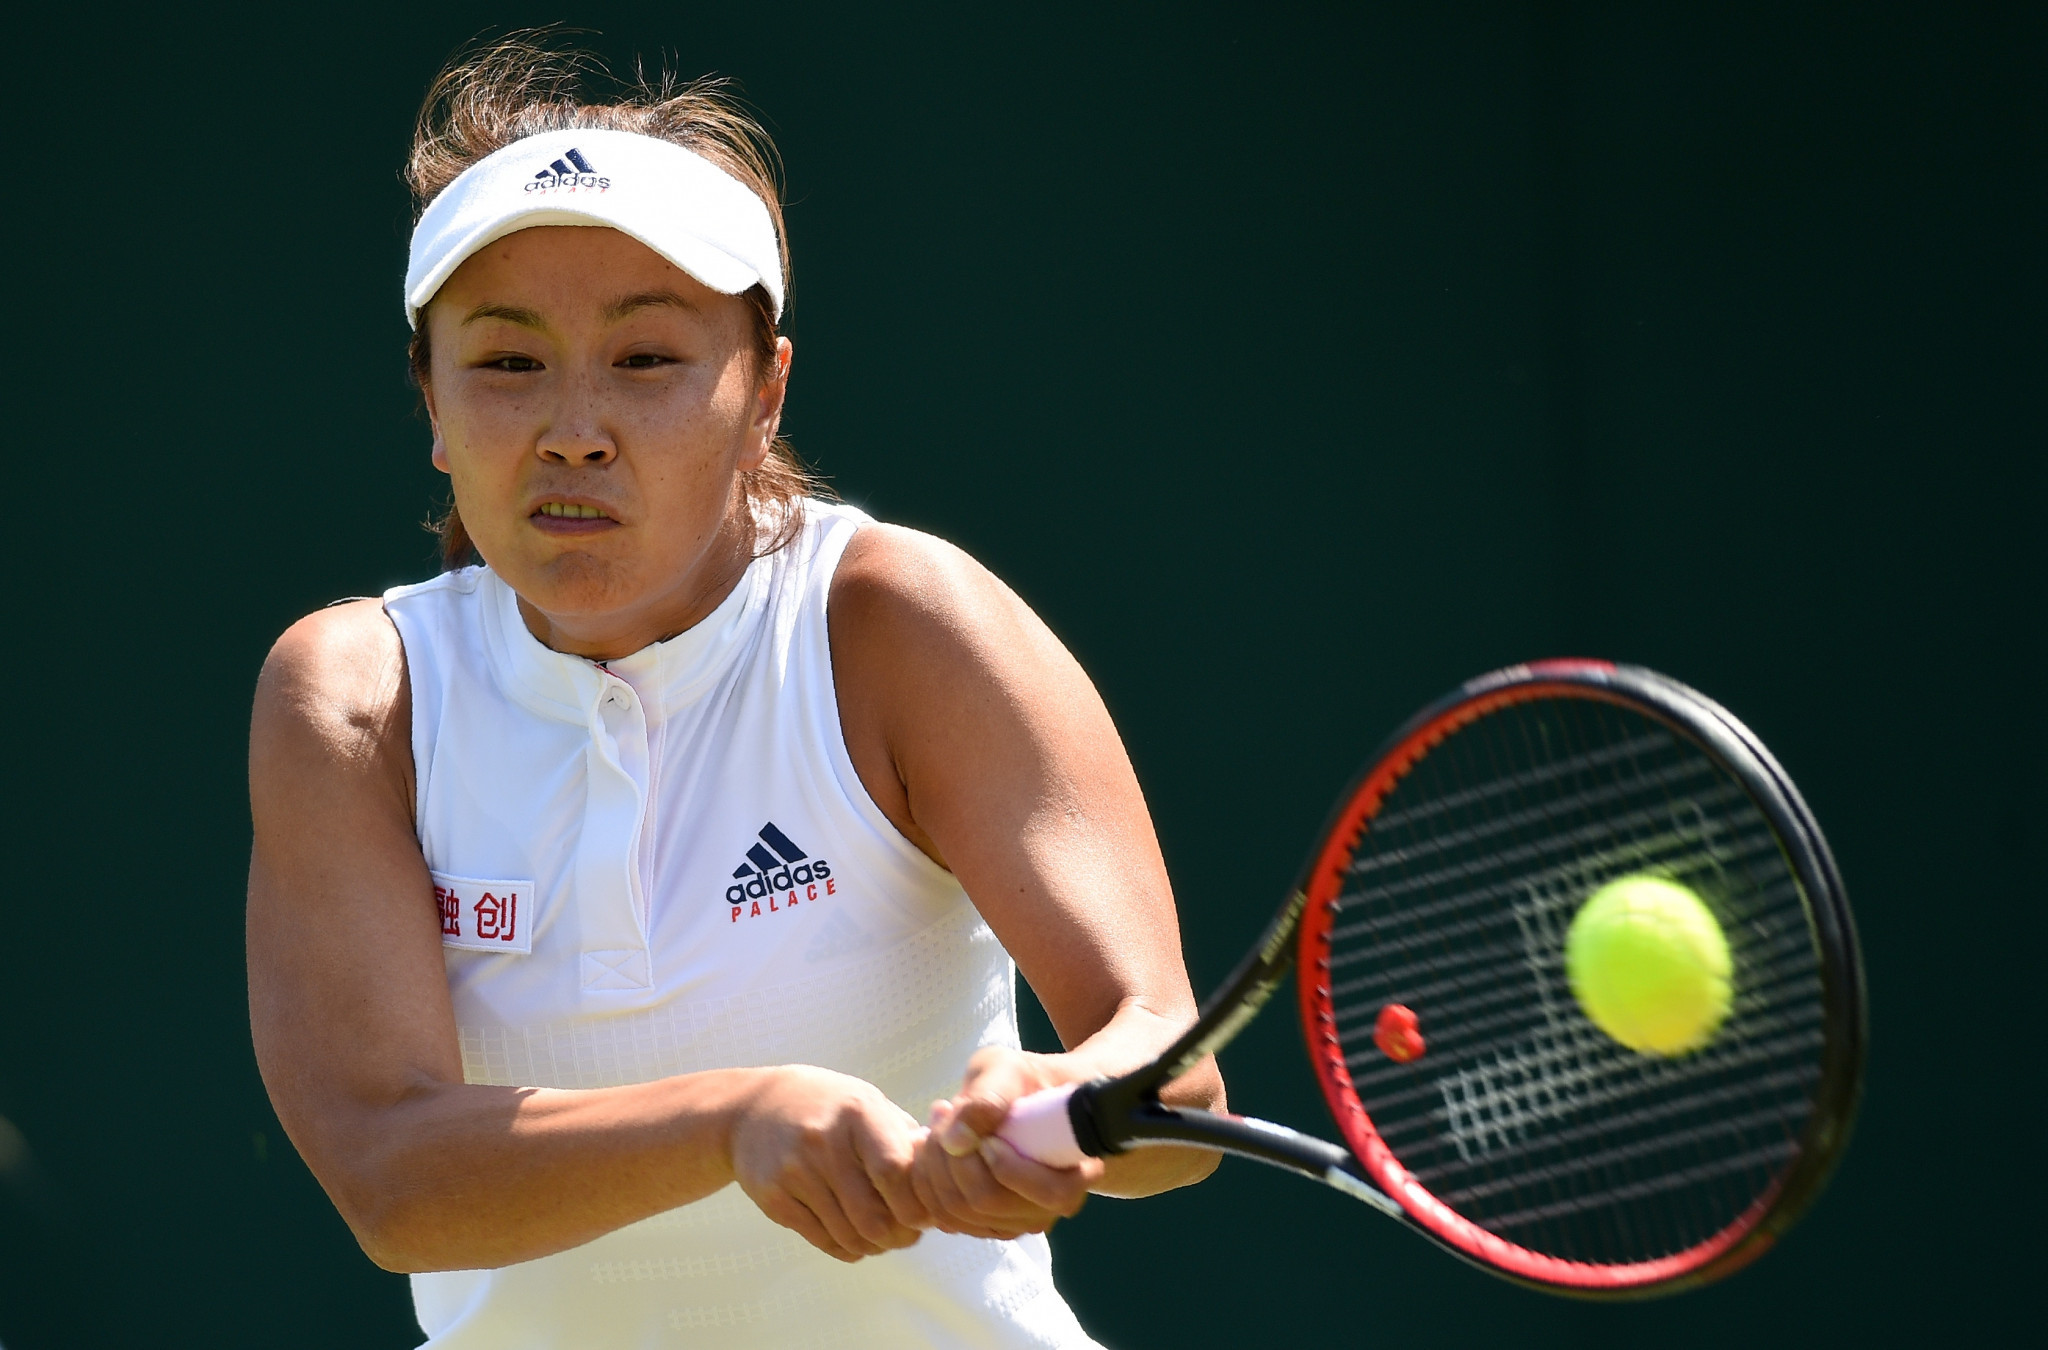 Chinese doubles player Peng suspended for six months after breaking anti-corruption rules